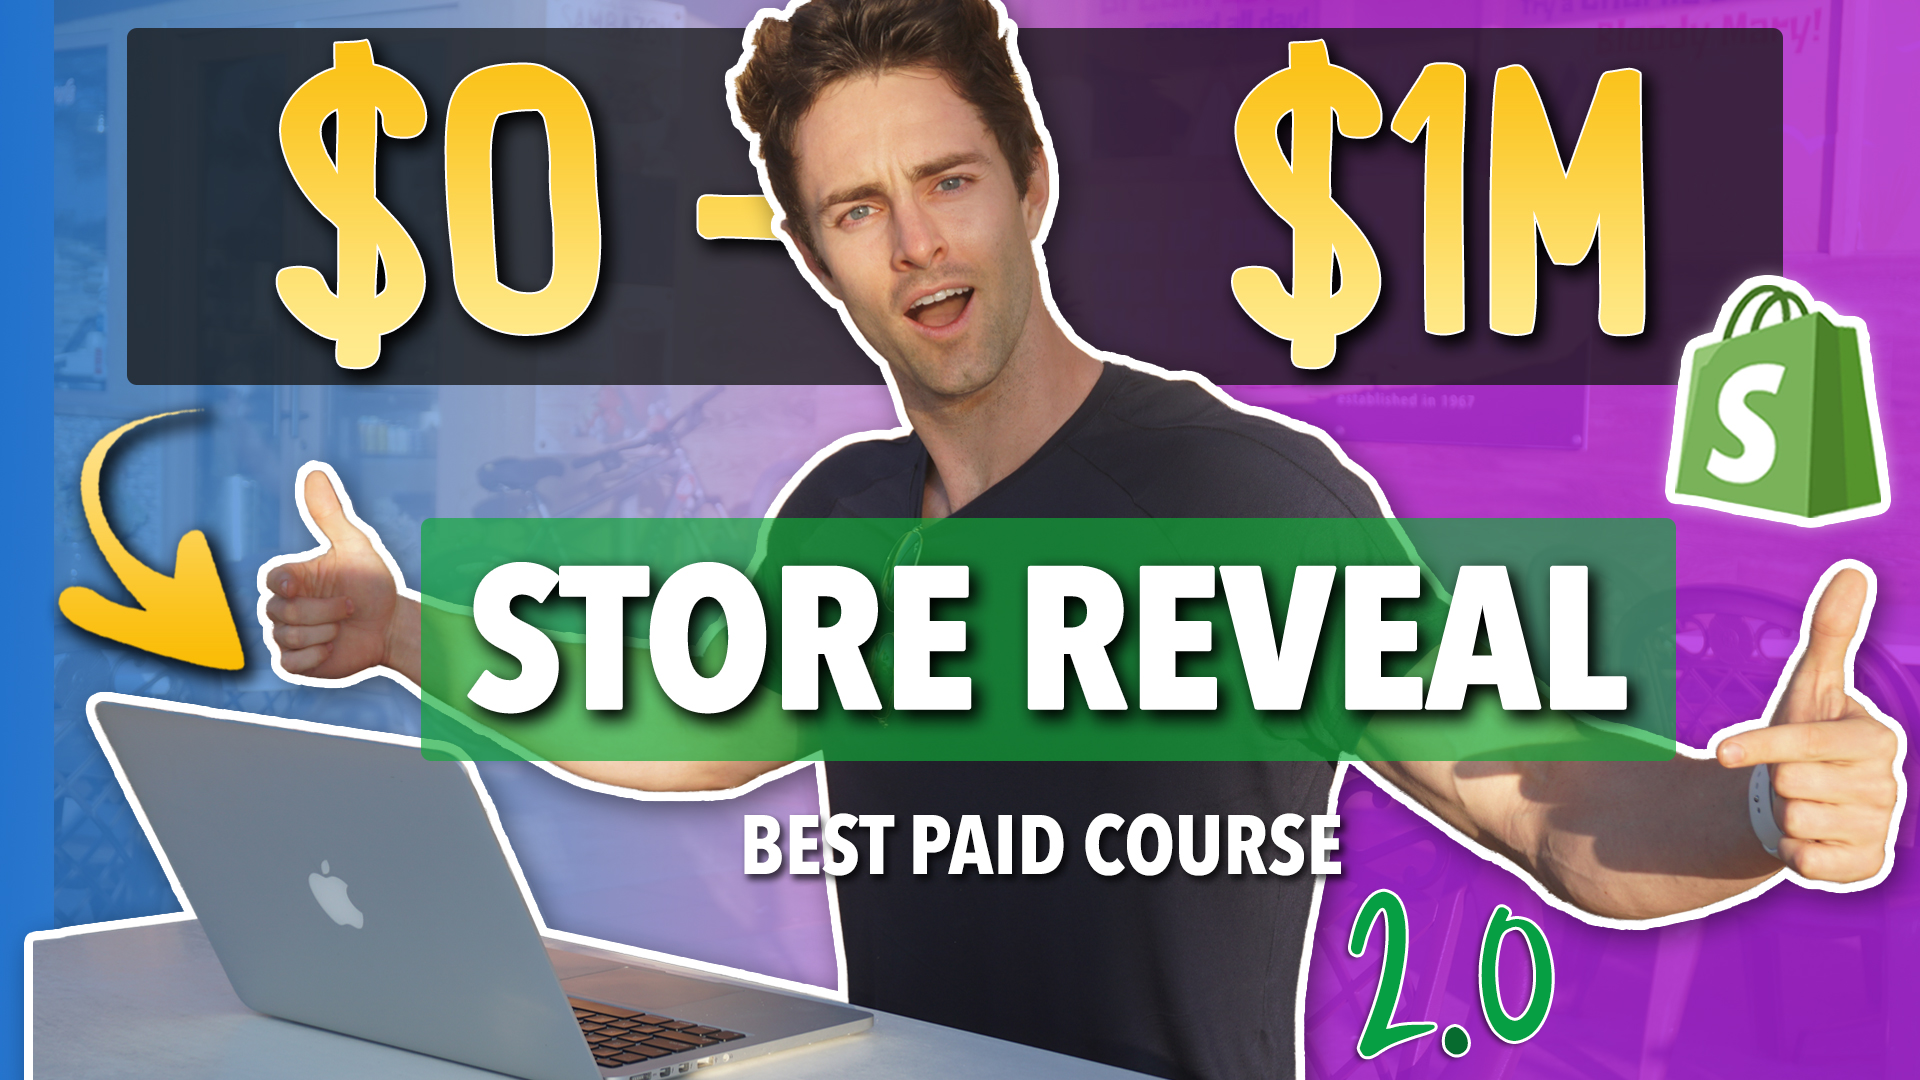 Course thumbnail new 2.0 content